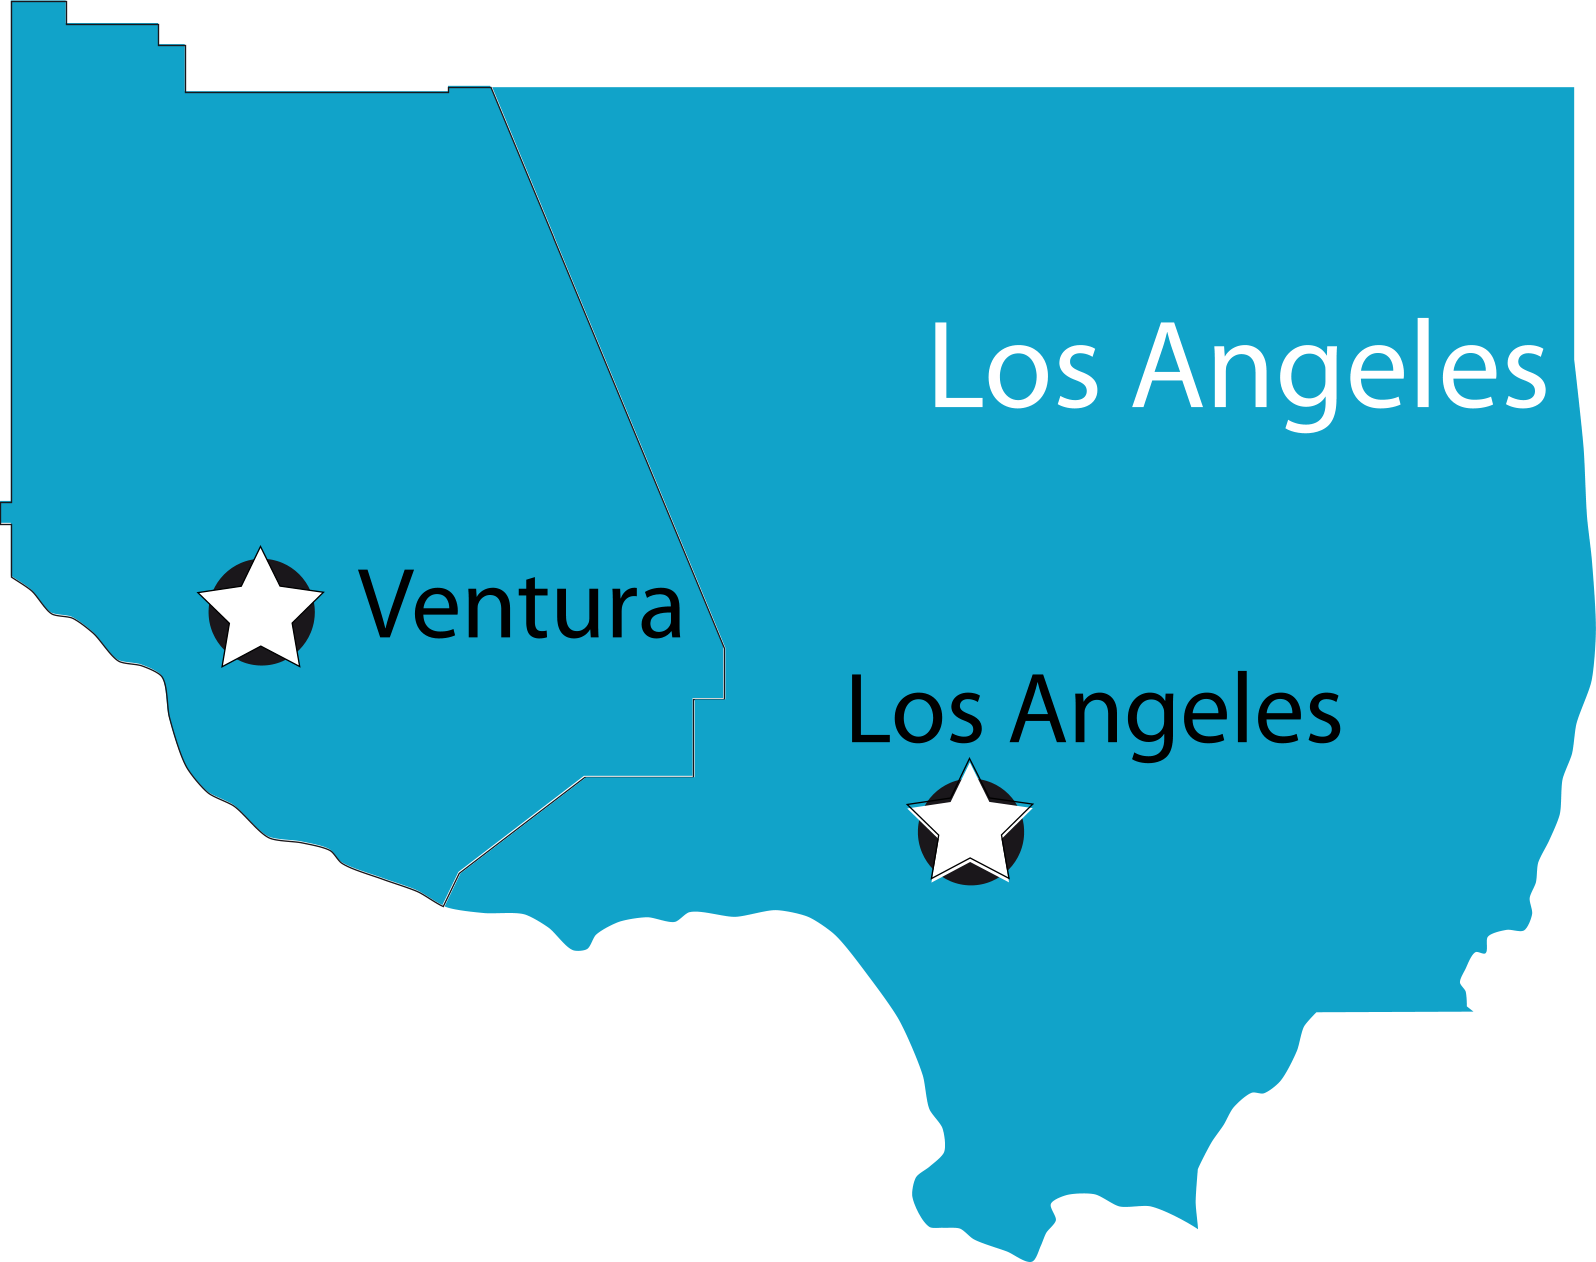 ventura and los angeles map